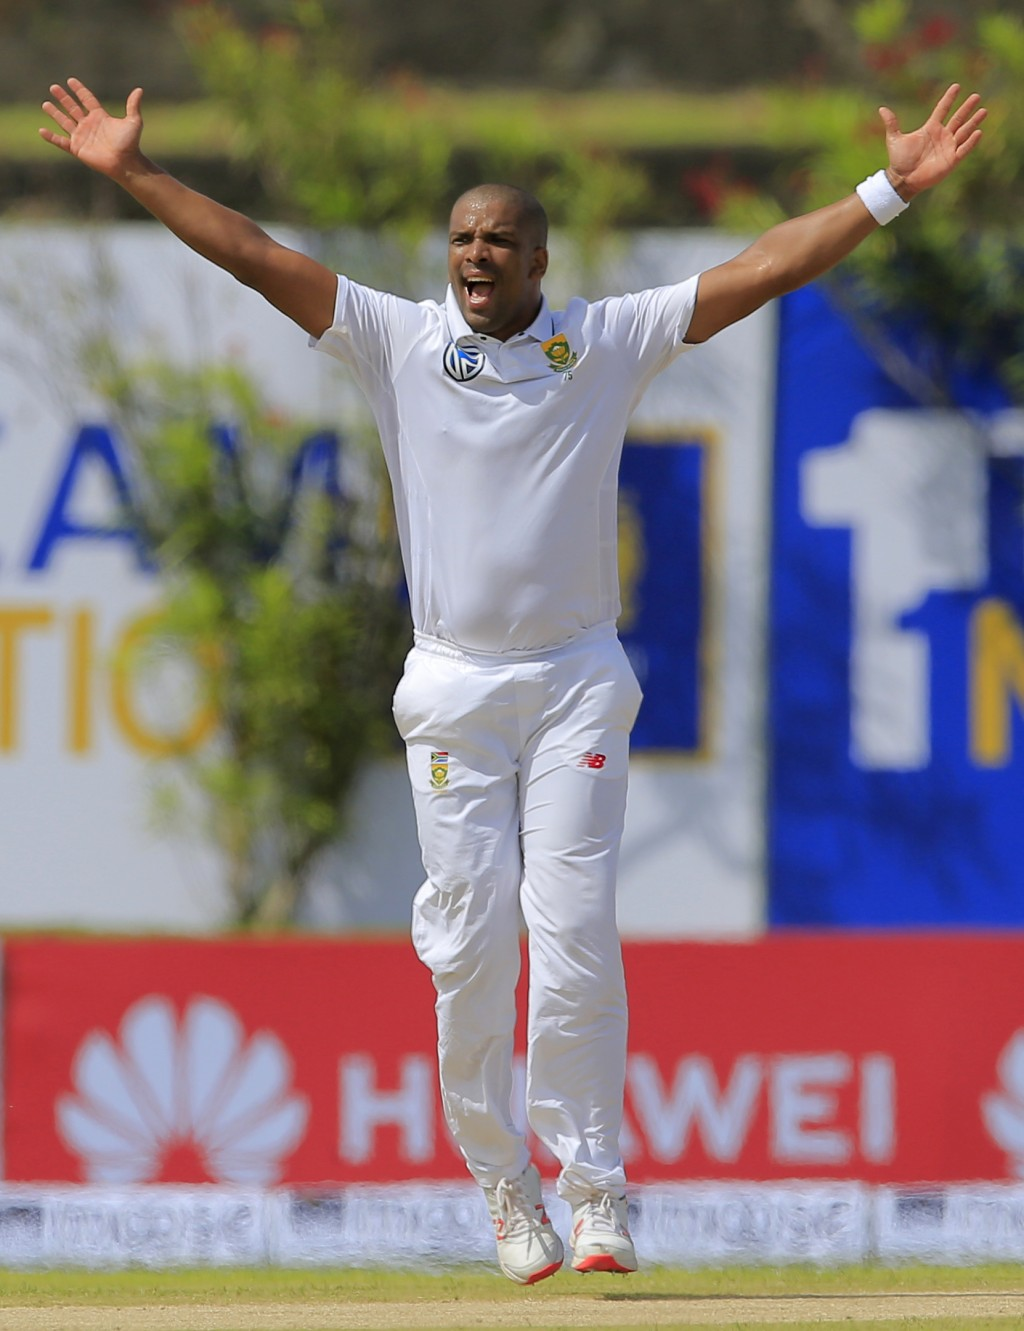 South Africa's Vernon Philander unsuccessfully appeals for the wicket of Sri Lanka's Dimuth Karunaratne during the first day's play of their first tes